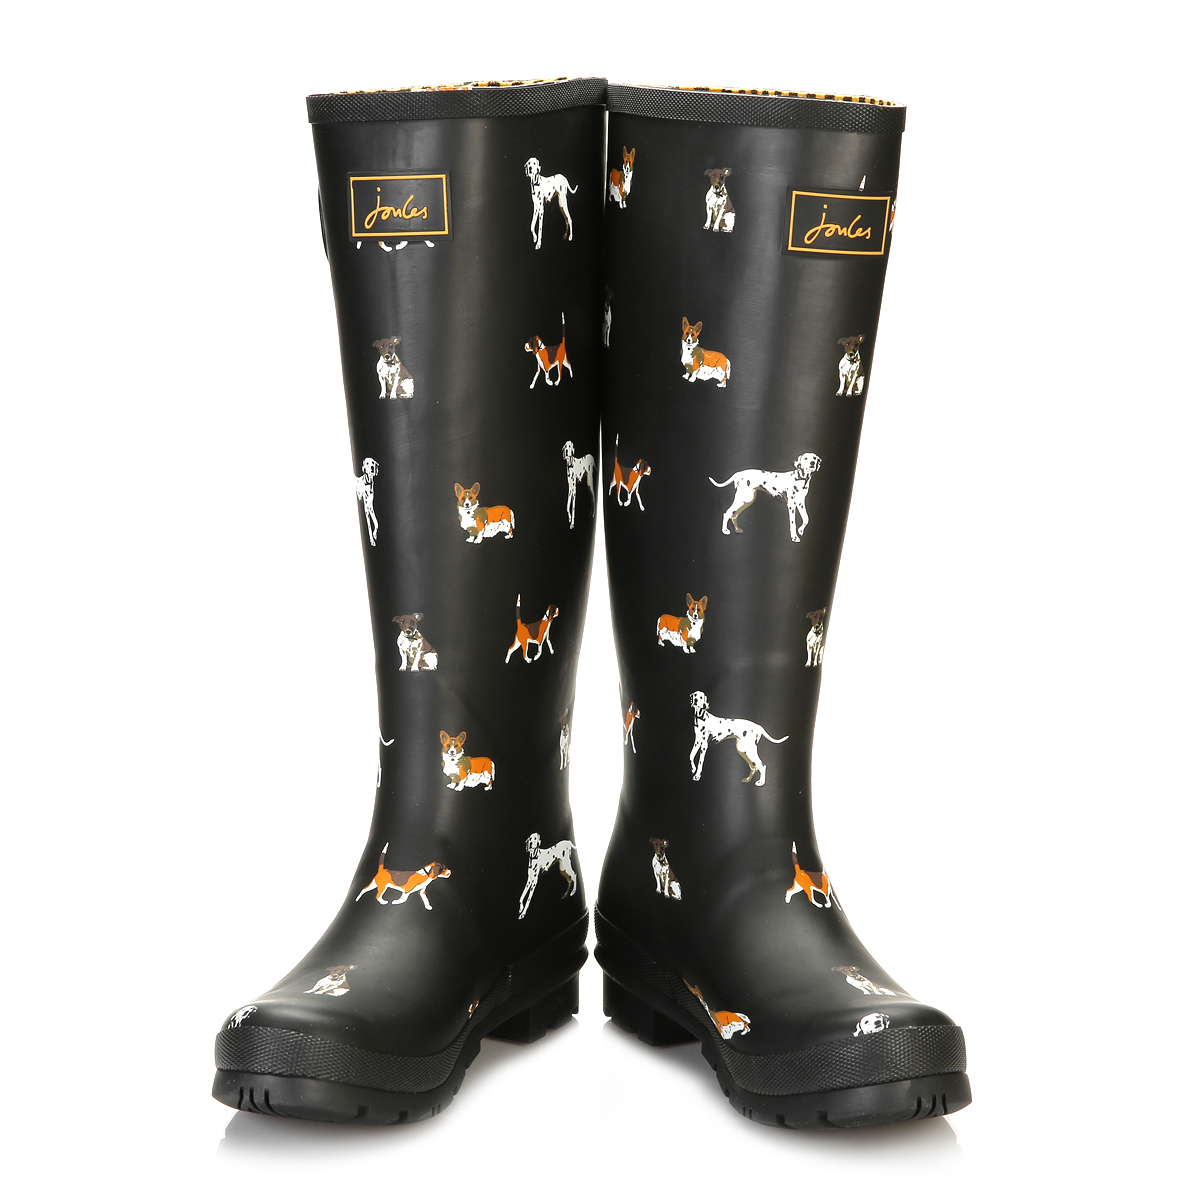 Joules-Womens-Wellies-Wellington-Boots-Rubber-Shoes-Various-